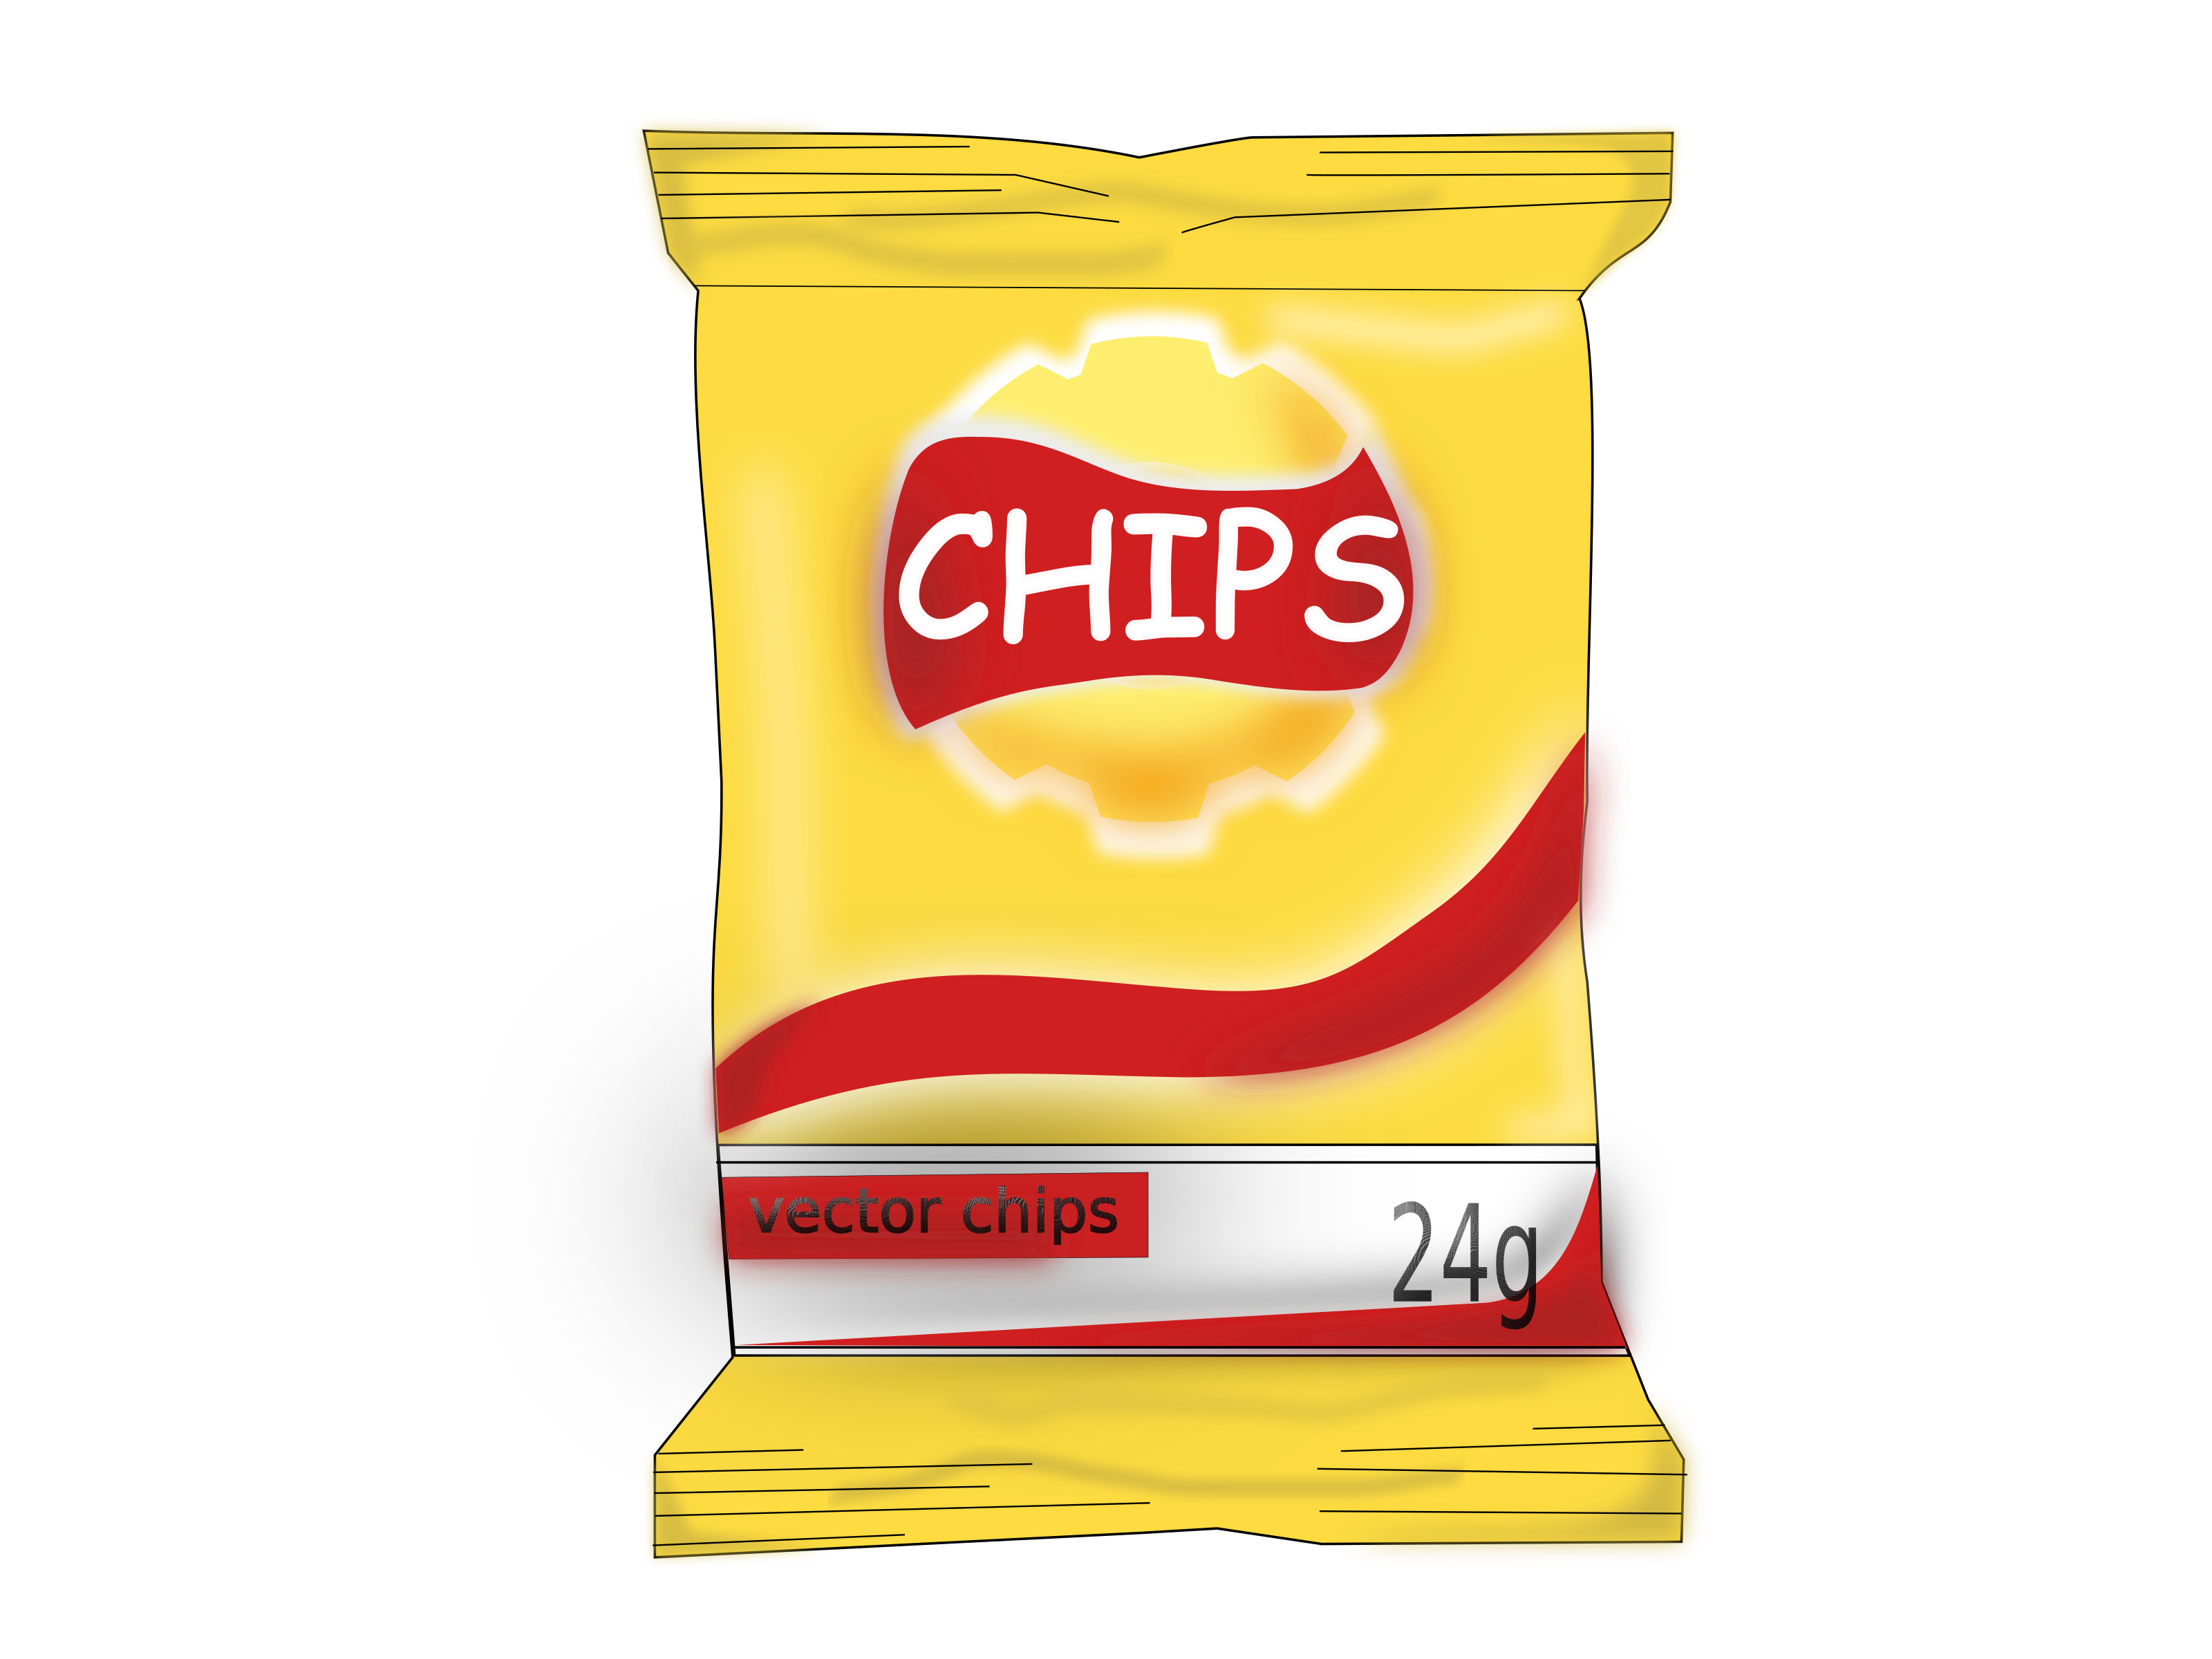 Big image. Chips png clipart image library download